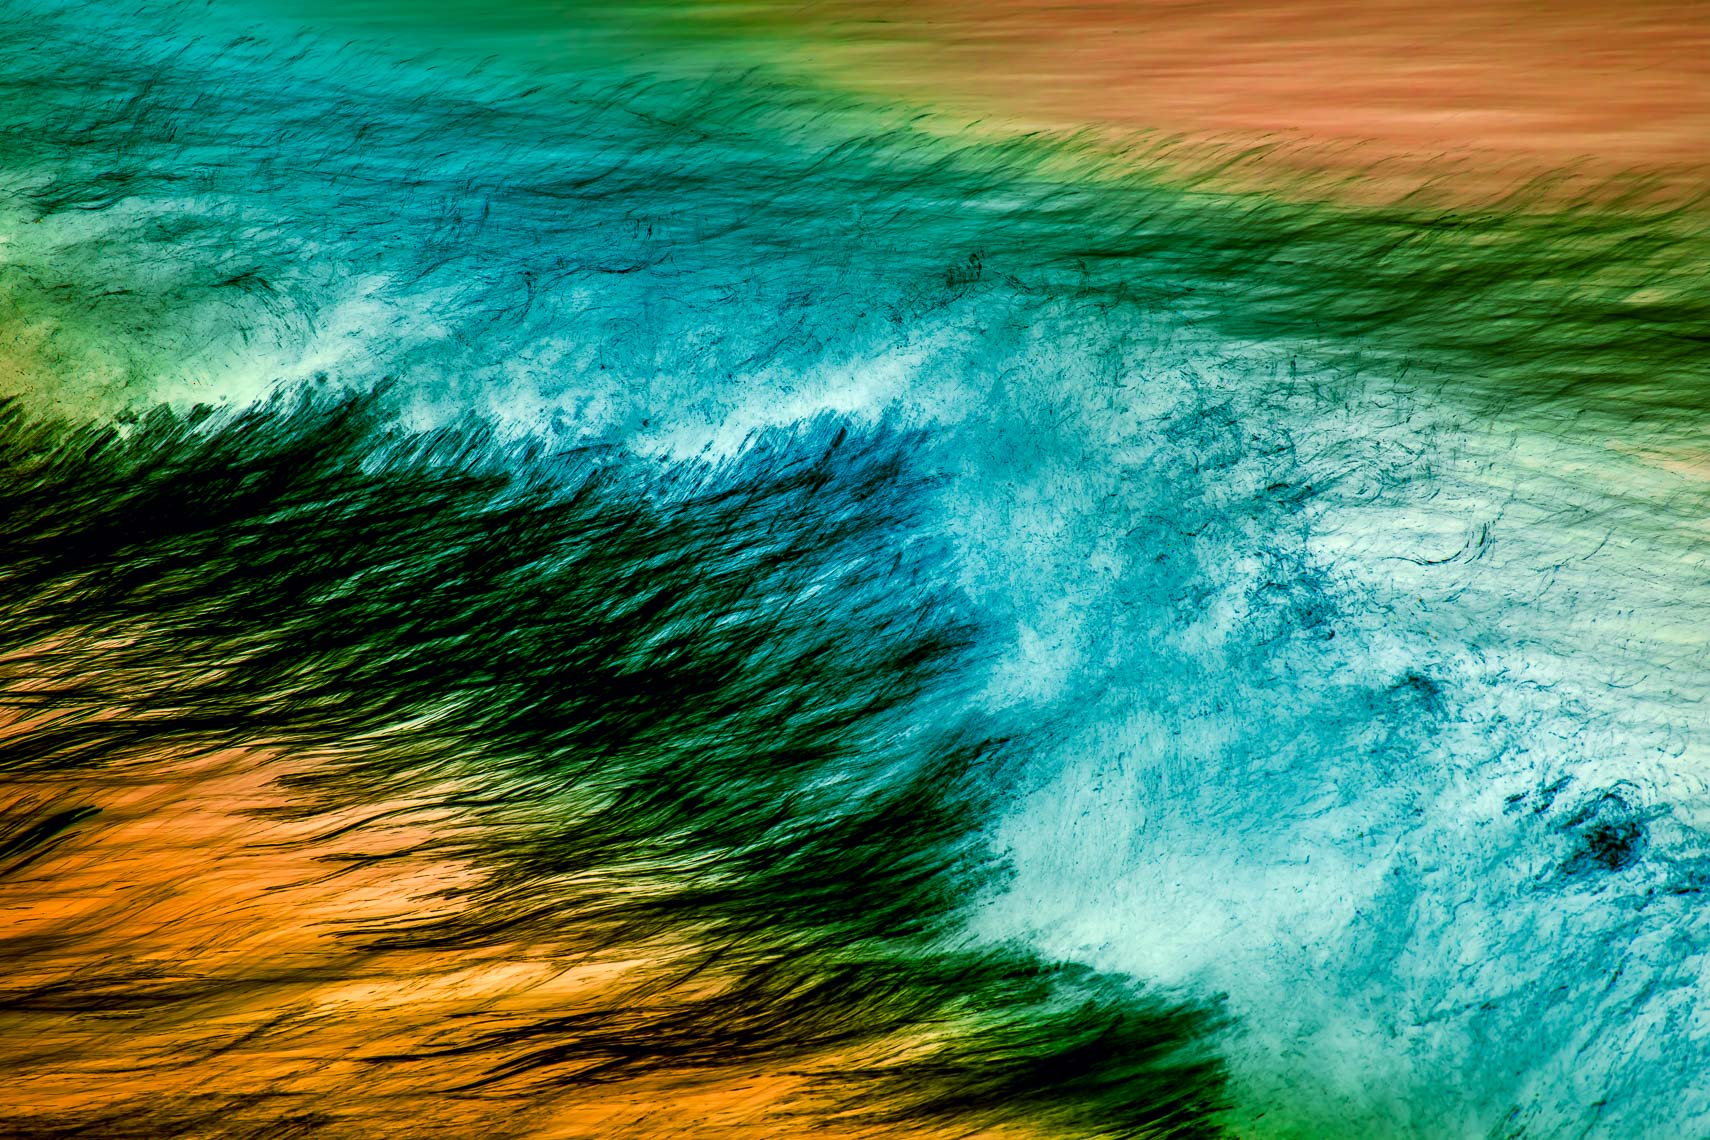 Waves-Art-069-170501